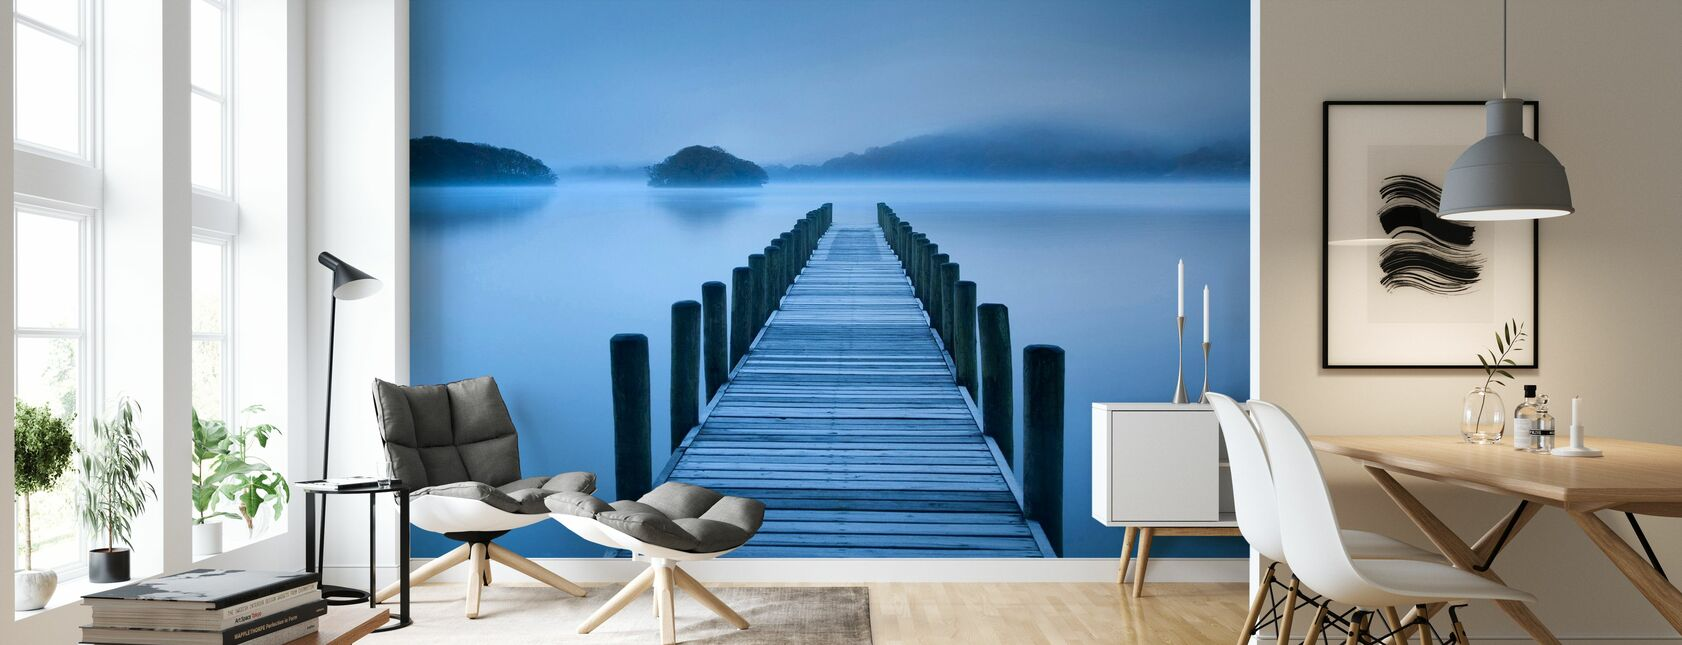 Blue Hour at the Lake - Wallpaper - Living Room